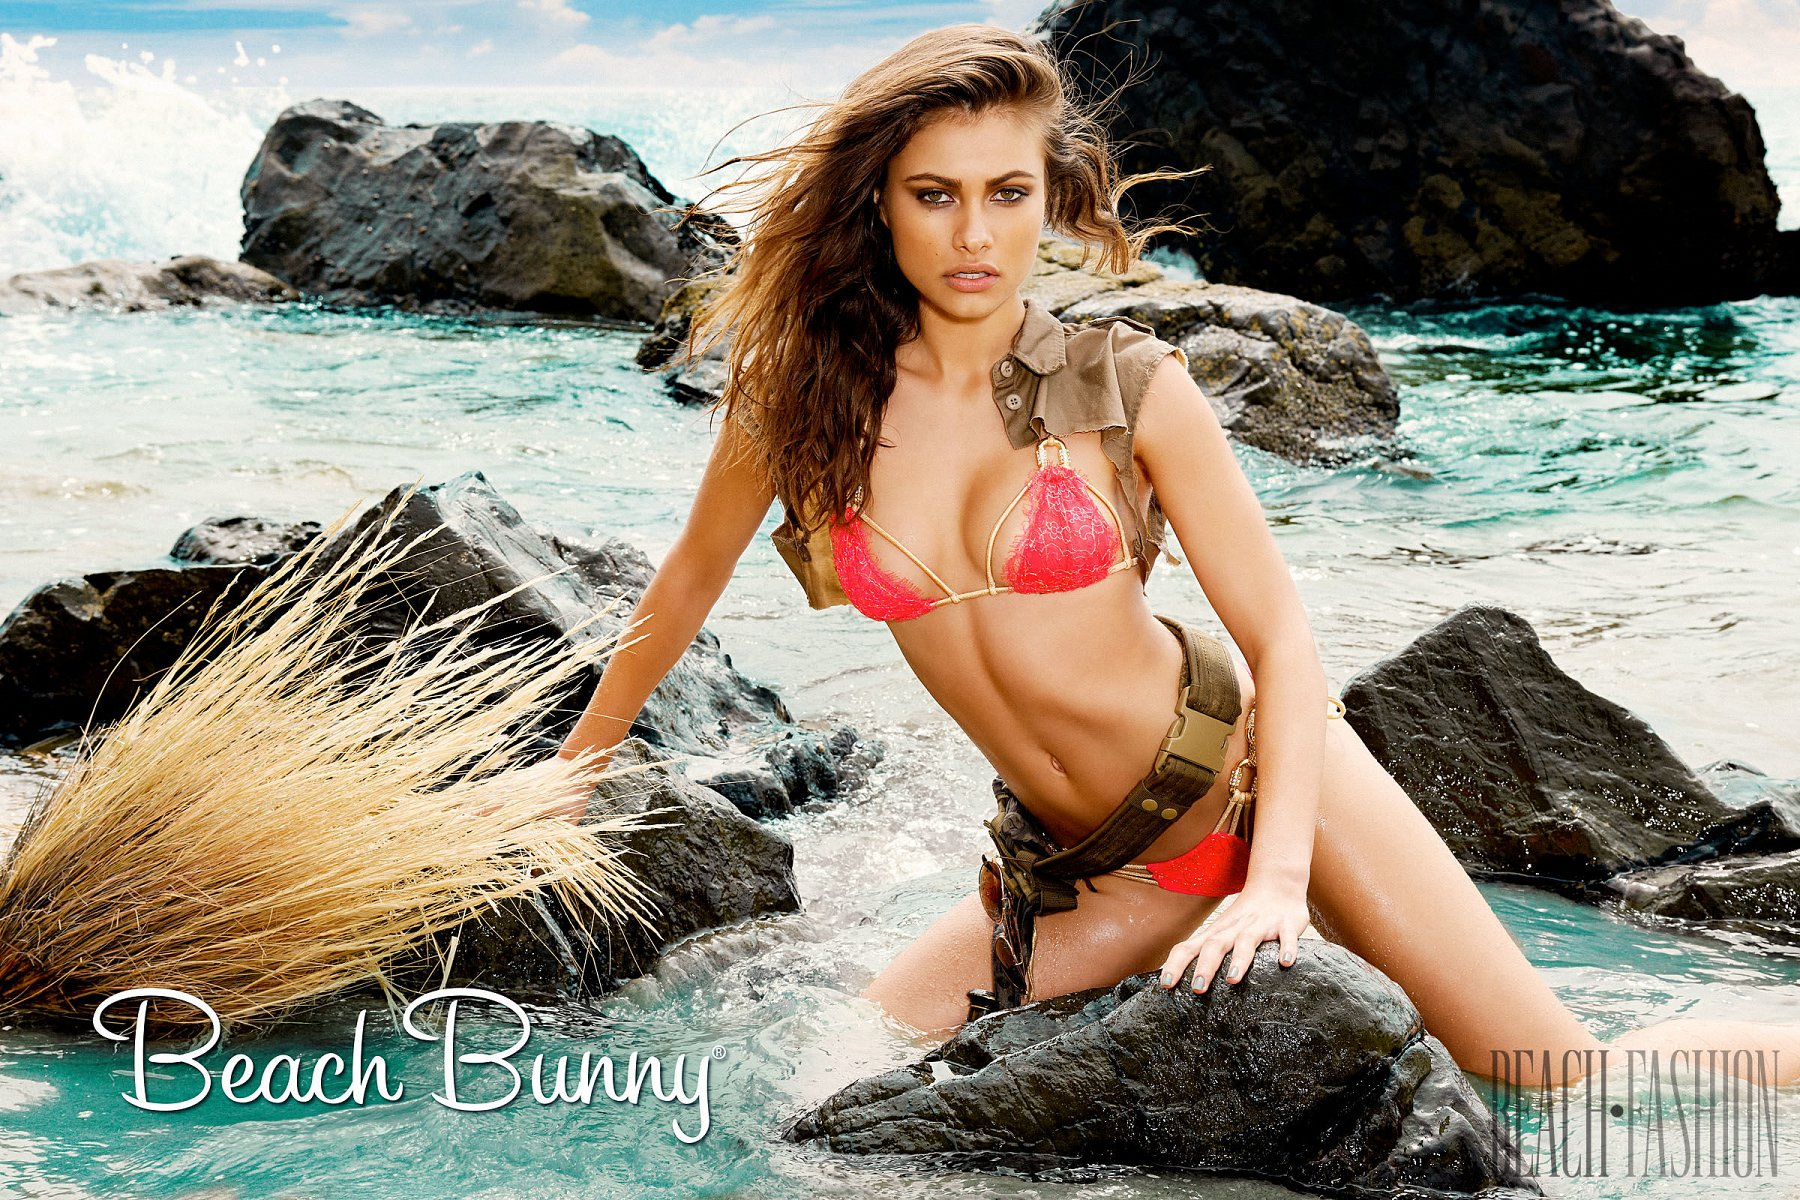 Beach Bunny Cruise 2015 - Swimwear - 1